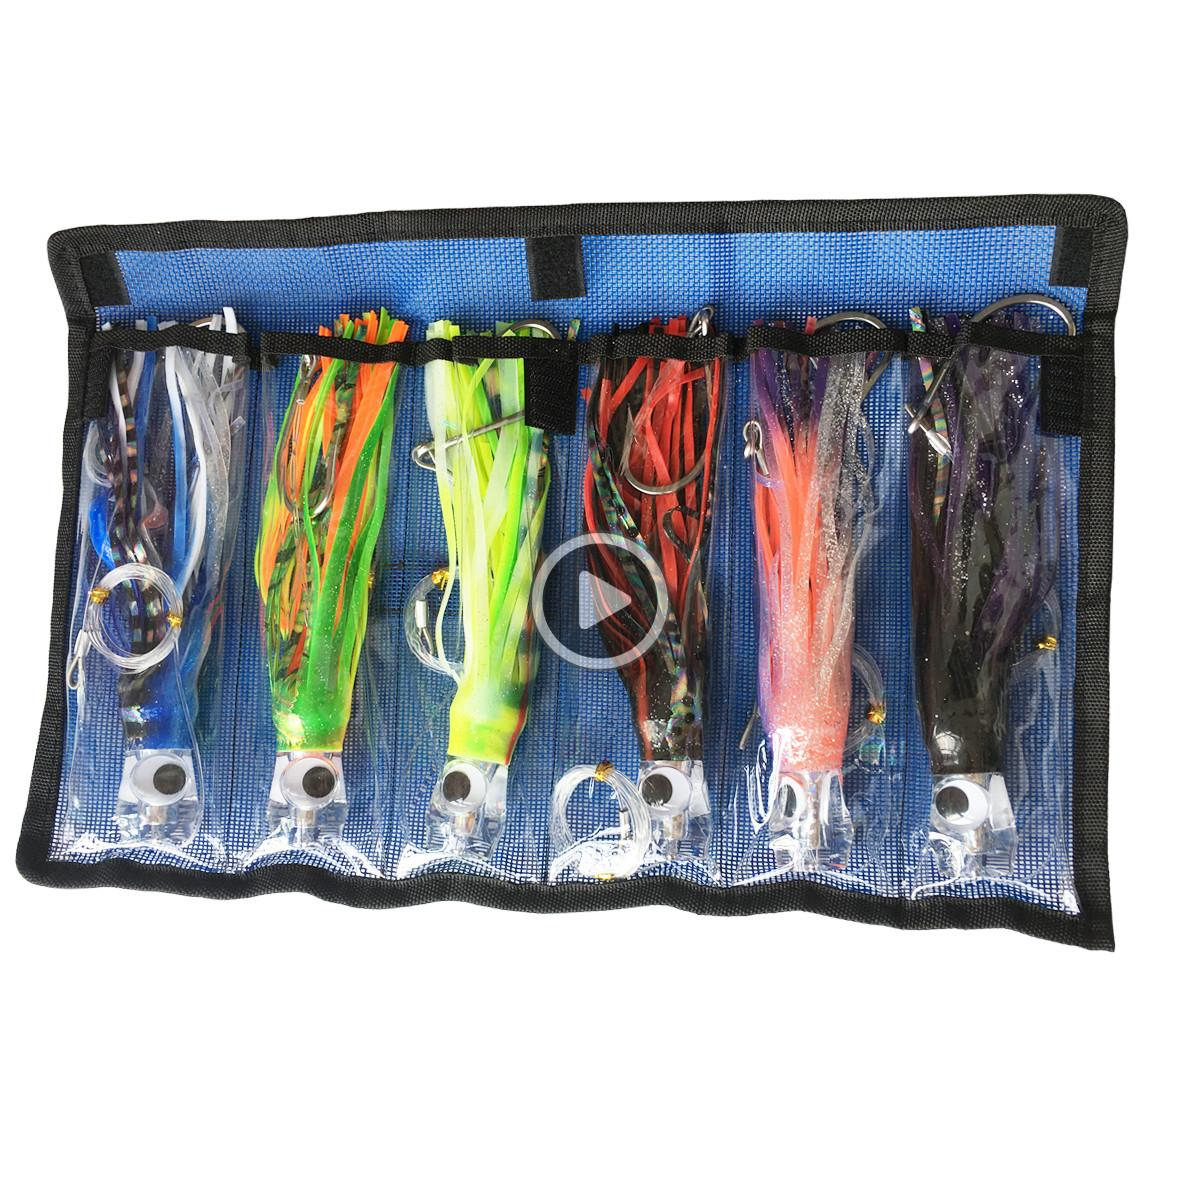 Octopus Skirts Trolling Lures Saltwater Tuna Marlin Wahoo Trolling Skirt Lures with Stainess Steel Hook and Swivel Red Leader Hook and Ba